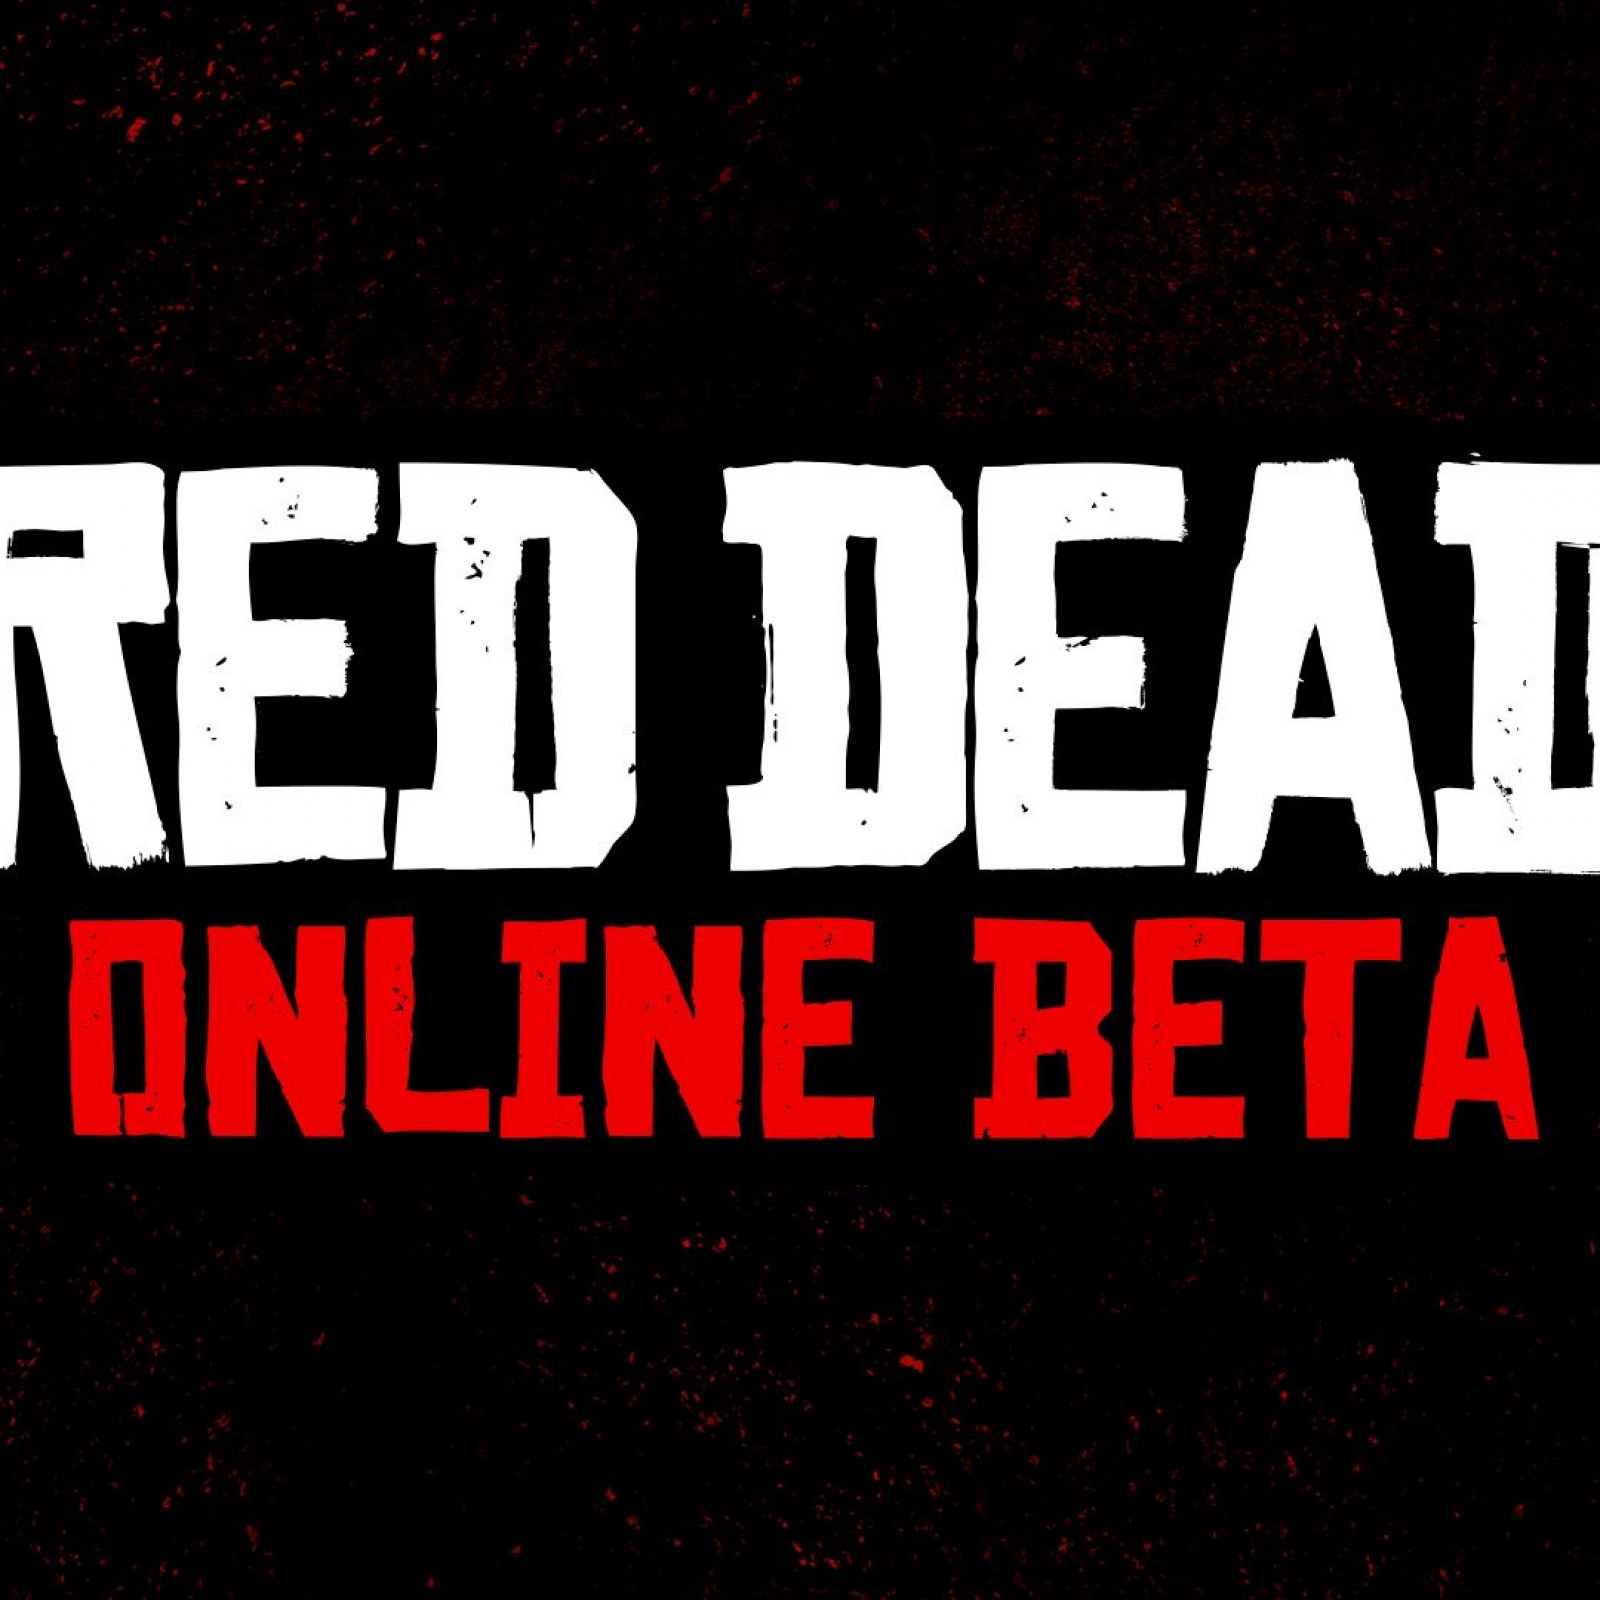 Red Dead Redemption' Online Not Working? Xbox and Rockstar